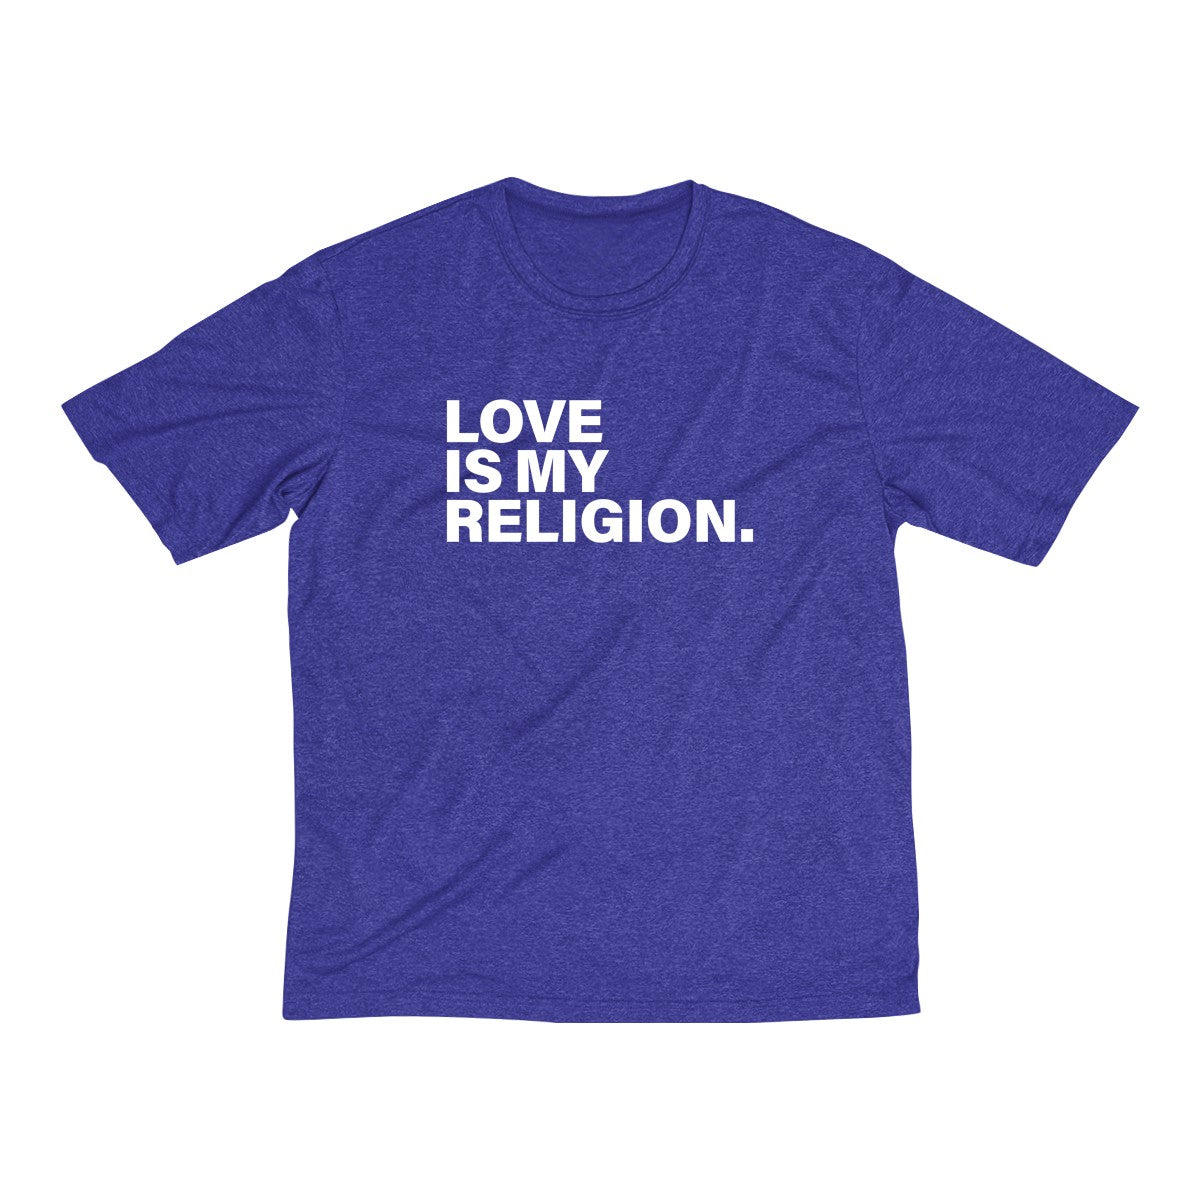 Love Is My Religion Men's Heather Dri-Fit Tee